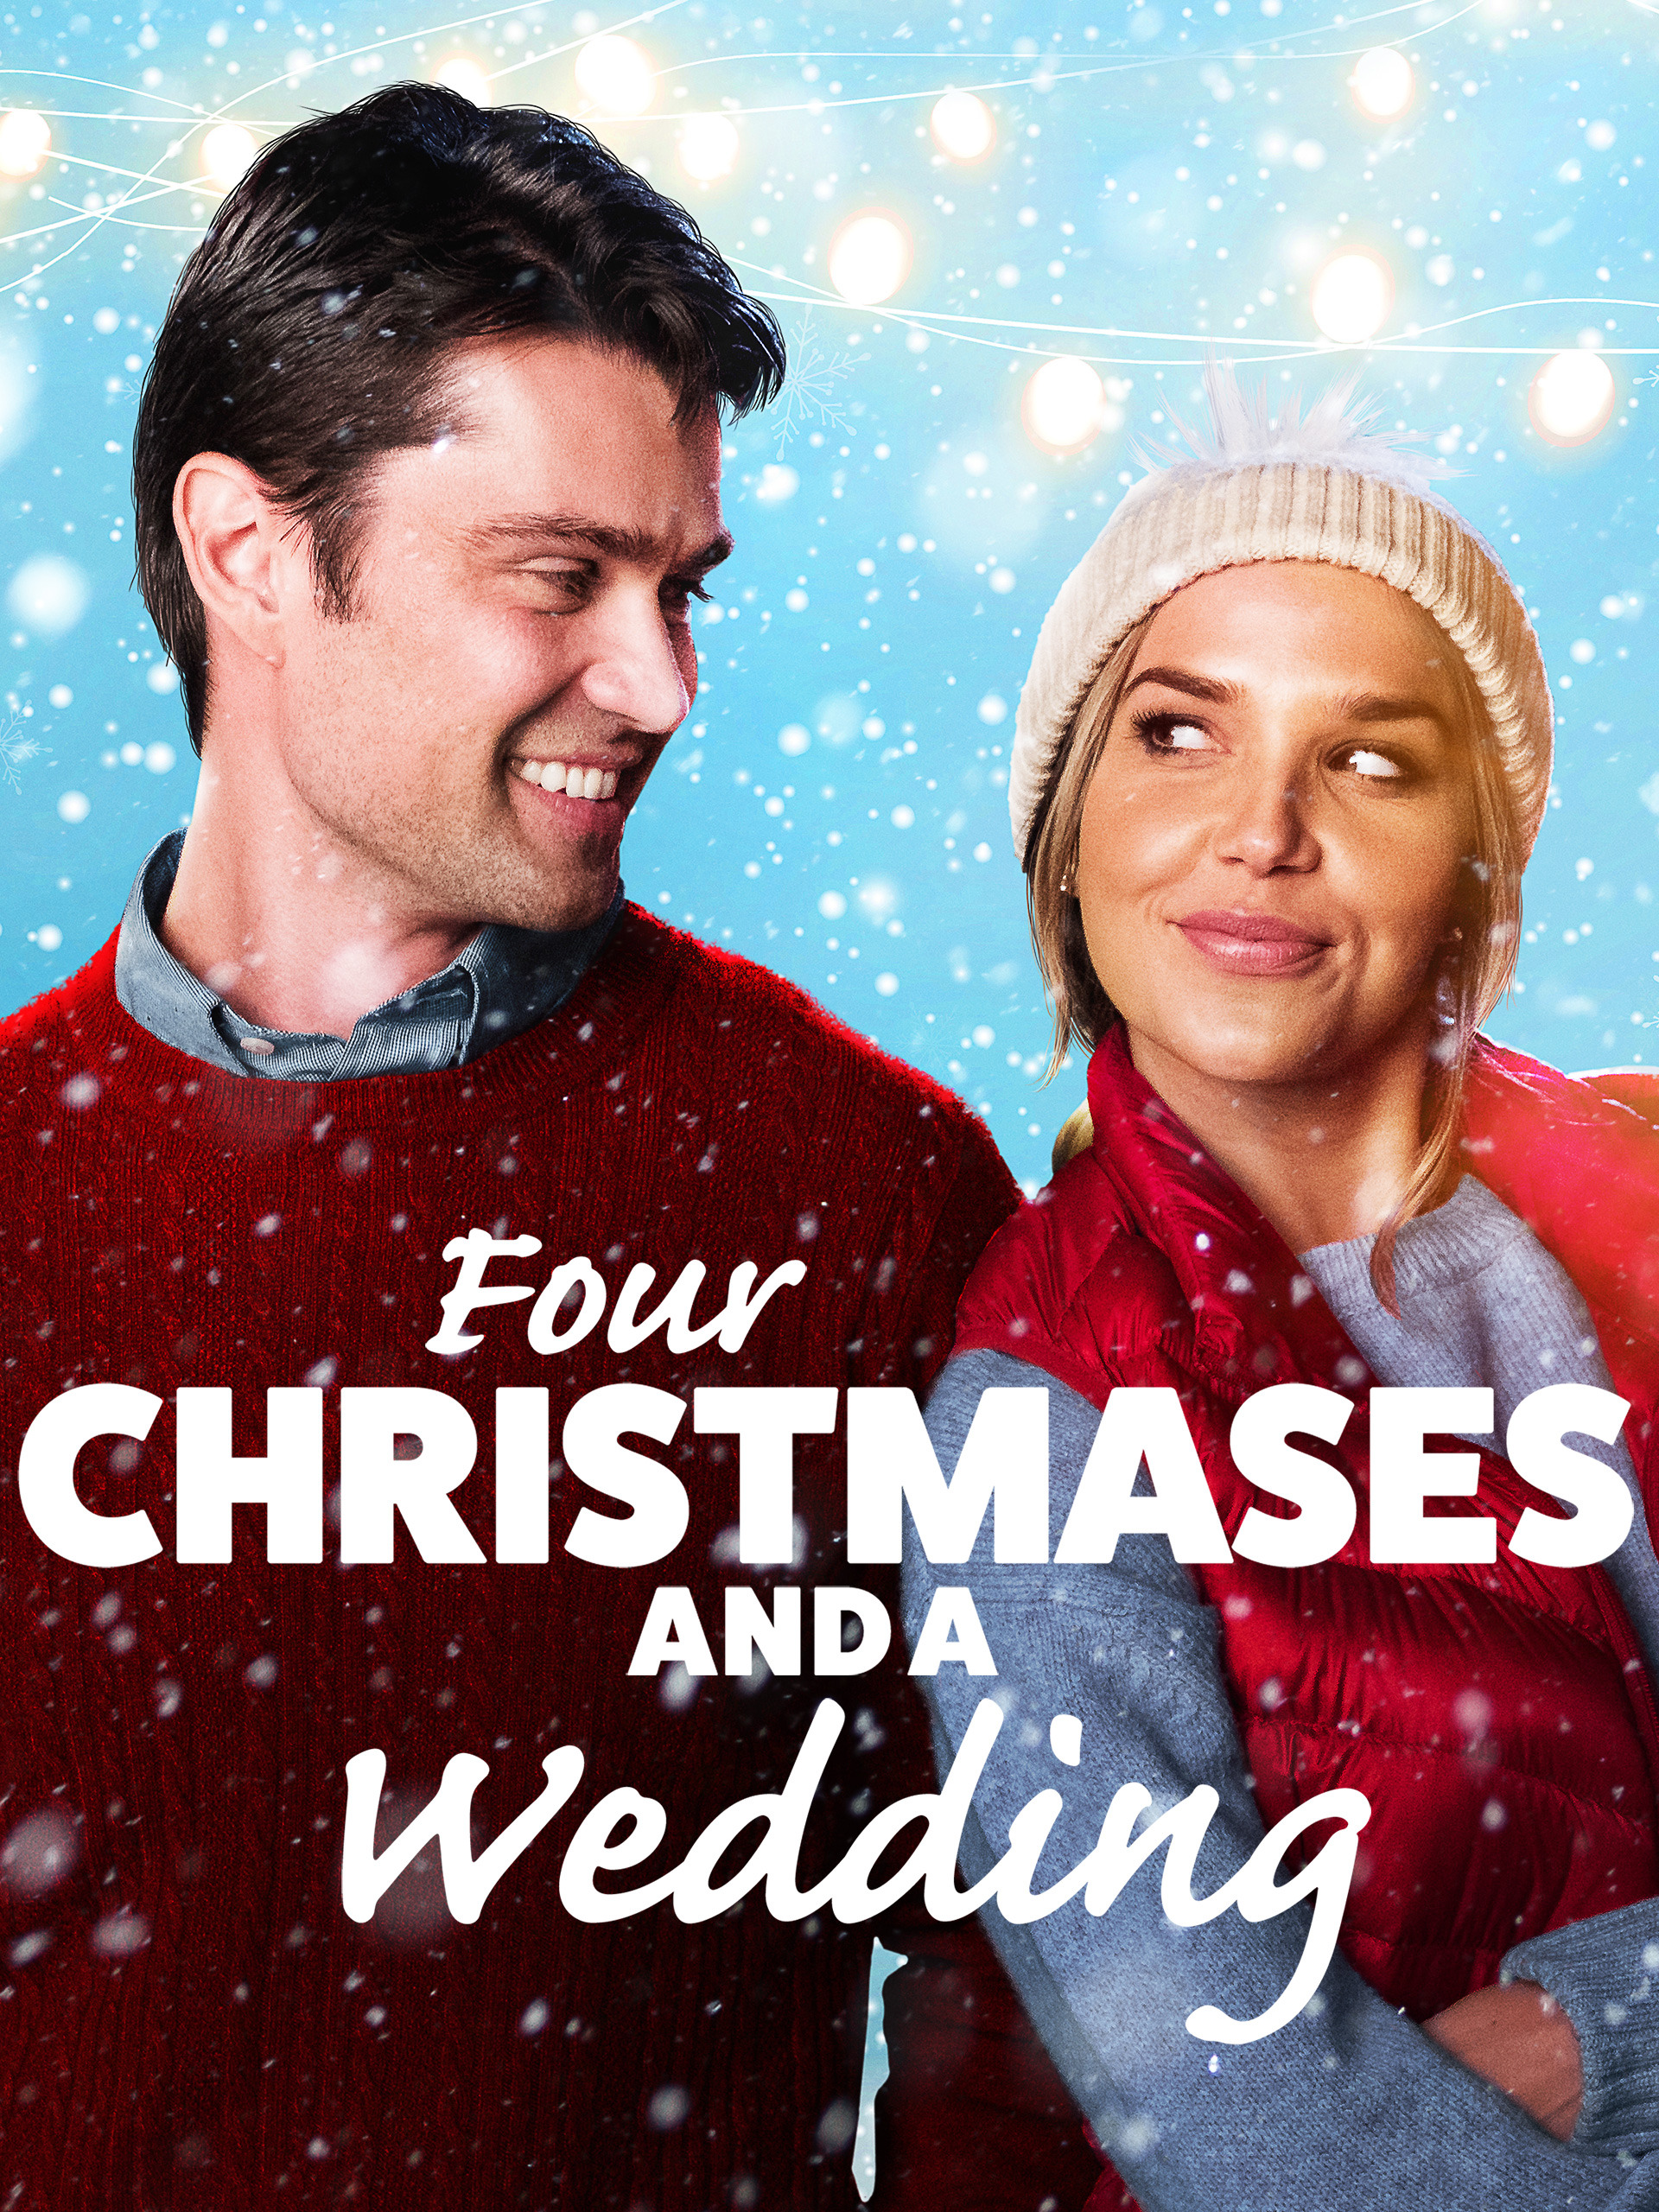 برايم فيديو: Four Christmases and a Wedding